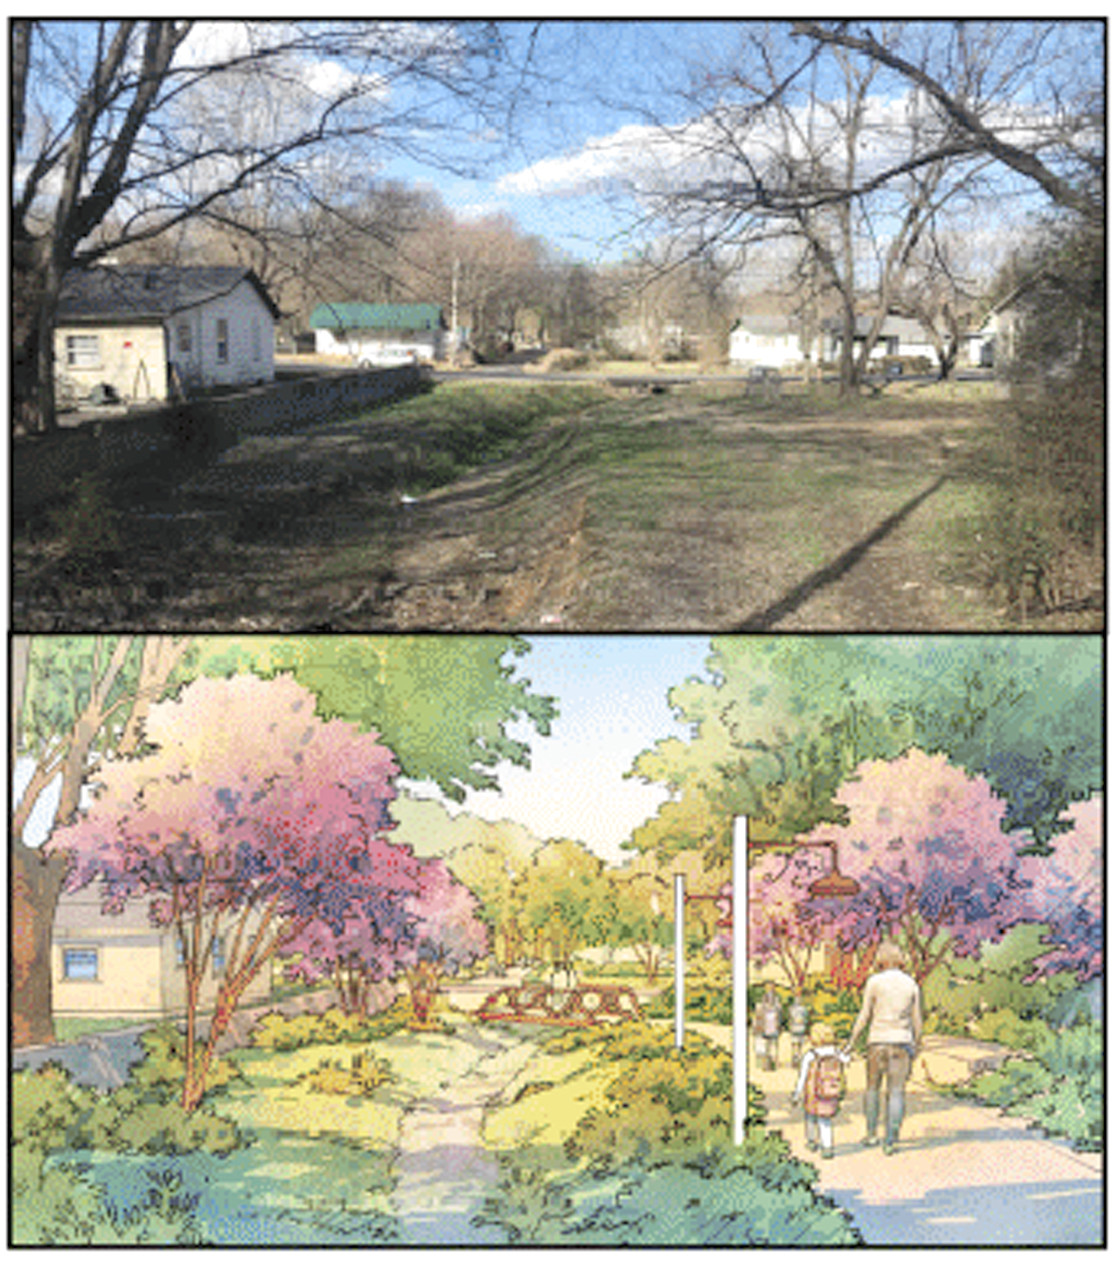 ONE OF THE IDEAS for the Blythe-Oldfield community is the possibility of creating a walking trail and park. This is a conceptual design presented by City FieldsExecutive Director Dustin Tommey.